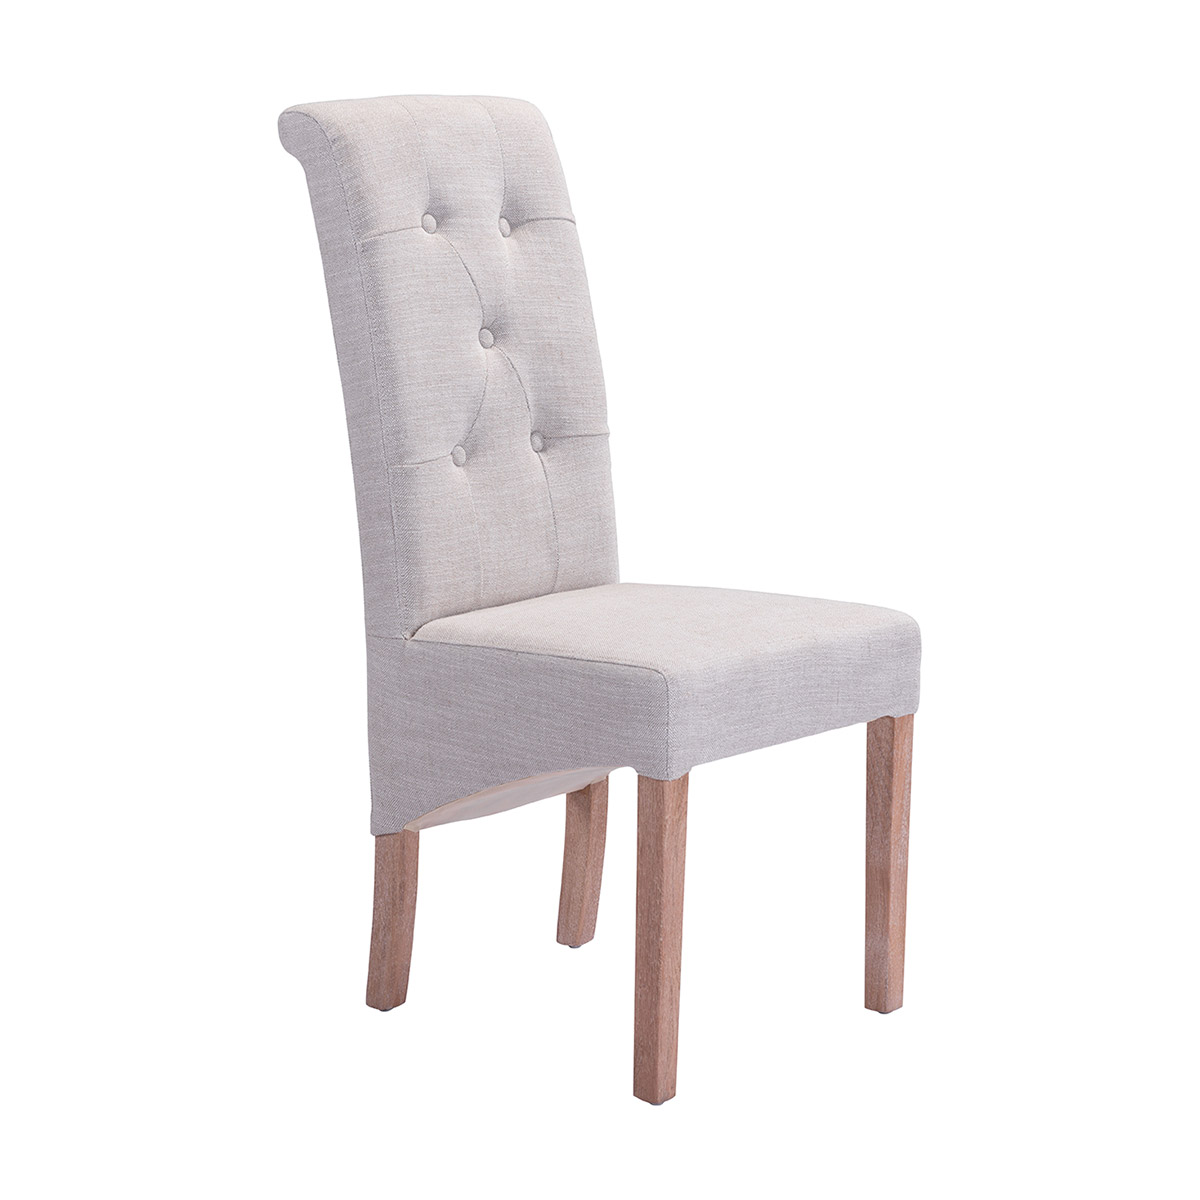 Zuo Era Hayes Valley Dining Chair in Beige Boost Home : Zuo Era Hayes Valley Dining Chair Beige 98070 1 from www.boosthome.com size 1200 x 1200 jpeg 112kB